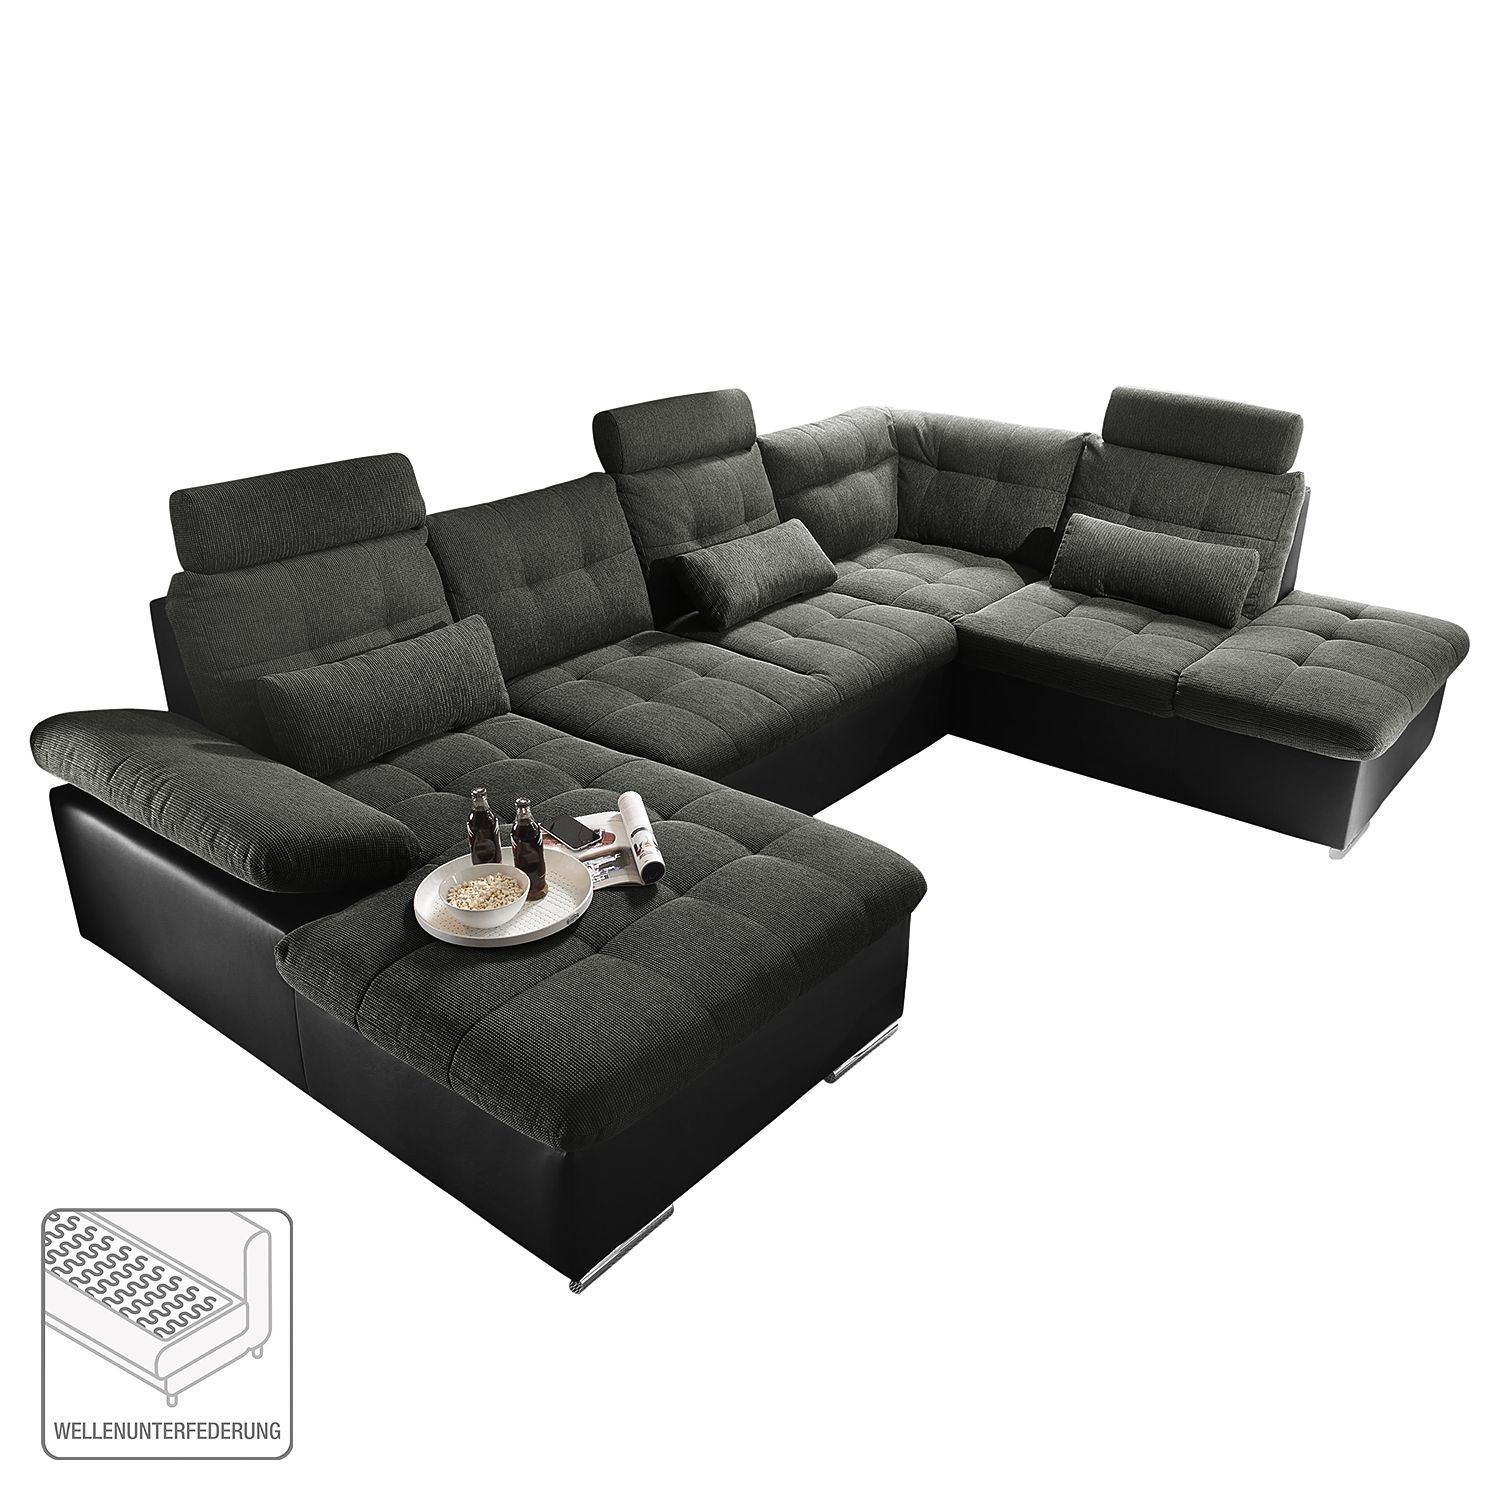 Residential Landscape Puntiro Corner Sofa Bed Couch U Shaped Sofa